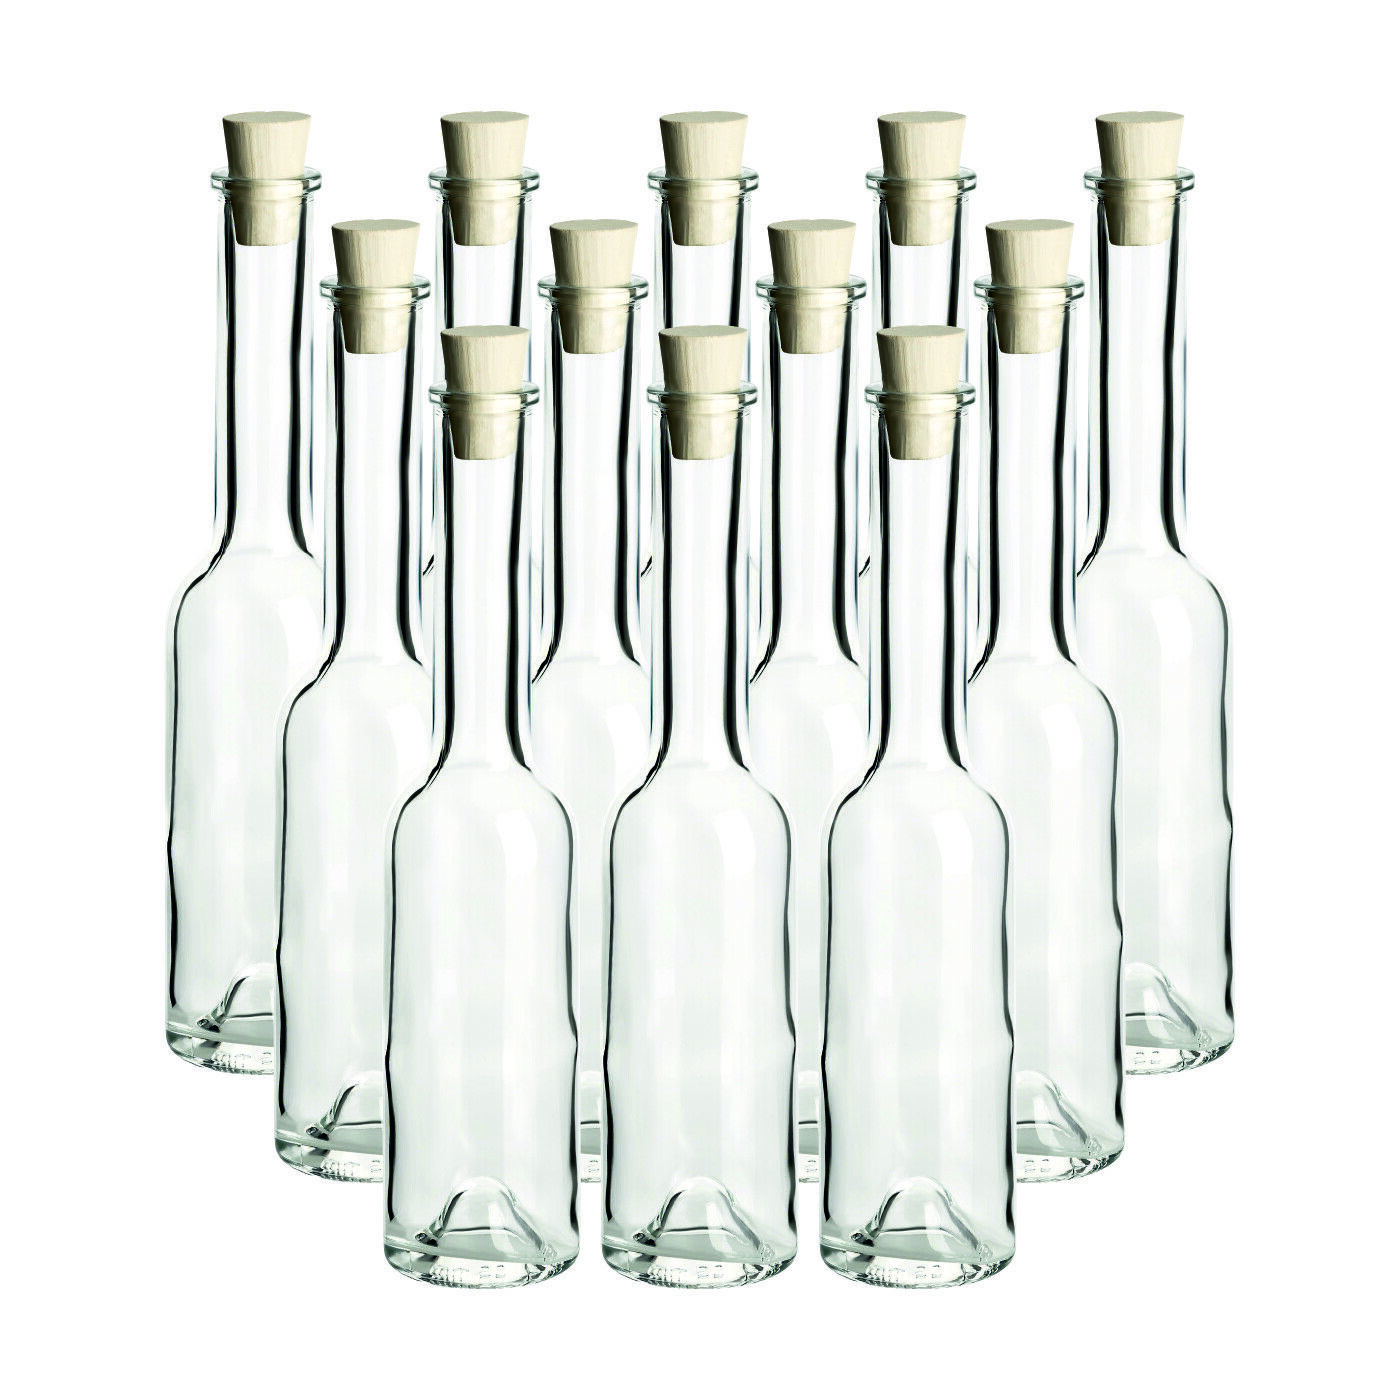 200 ml edle leere glasflaschen schnapsflasche lik r flasche 0 2 l fabrikneu eur 7 95. Black Bedroom Furniture Sets. Home Design Ideas